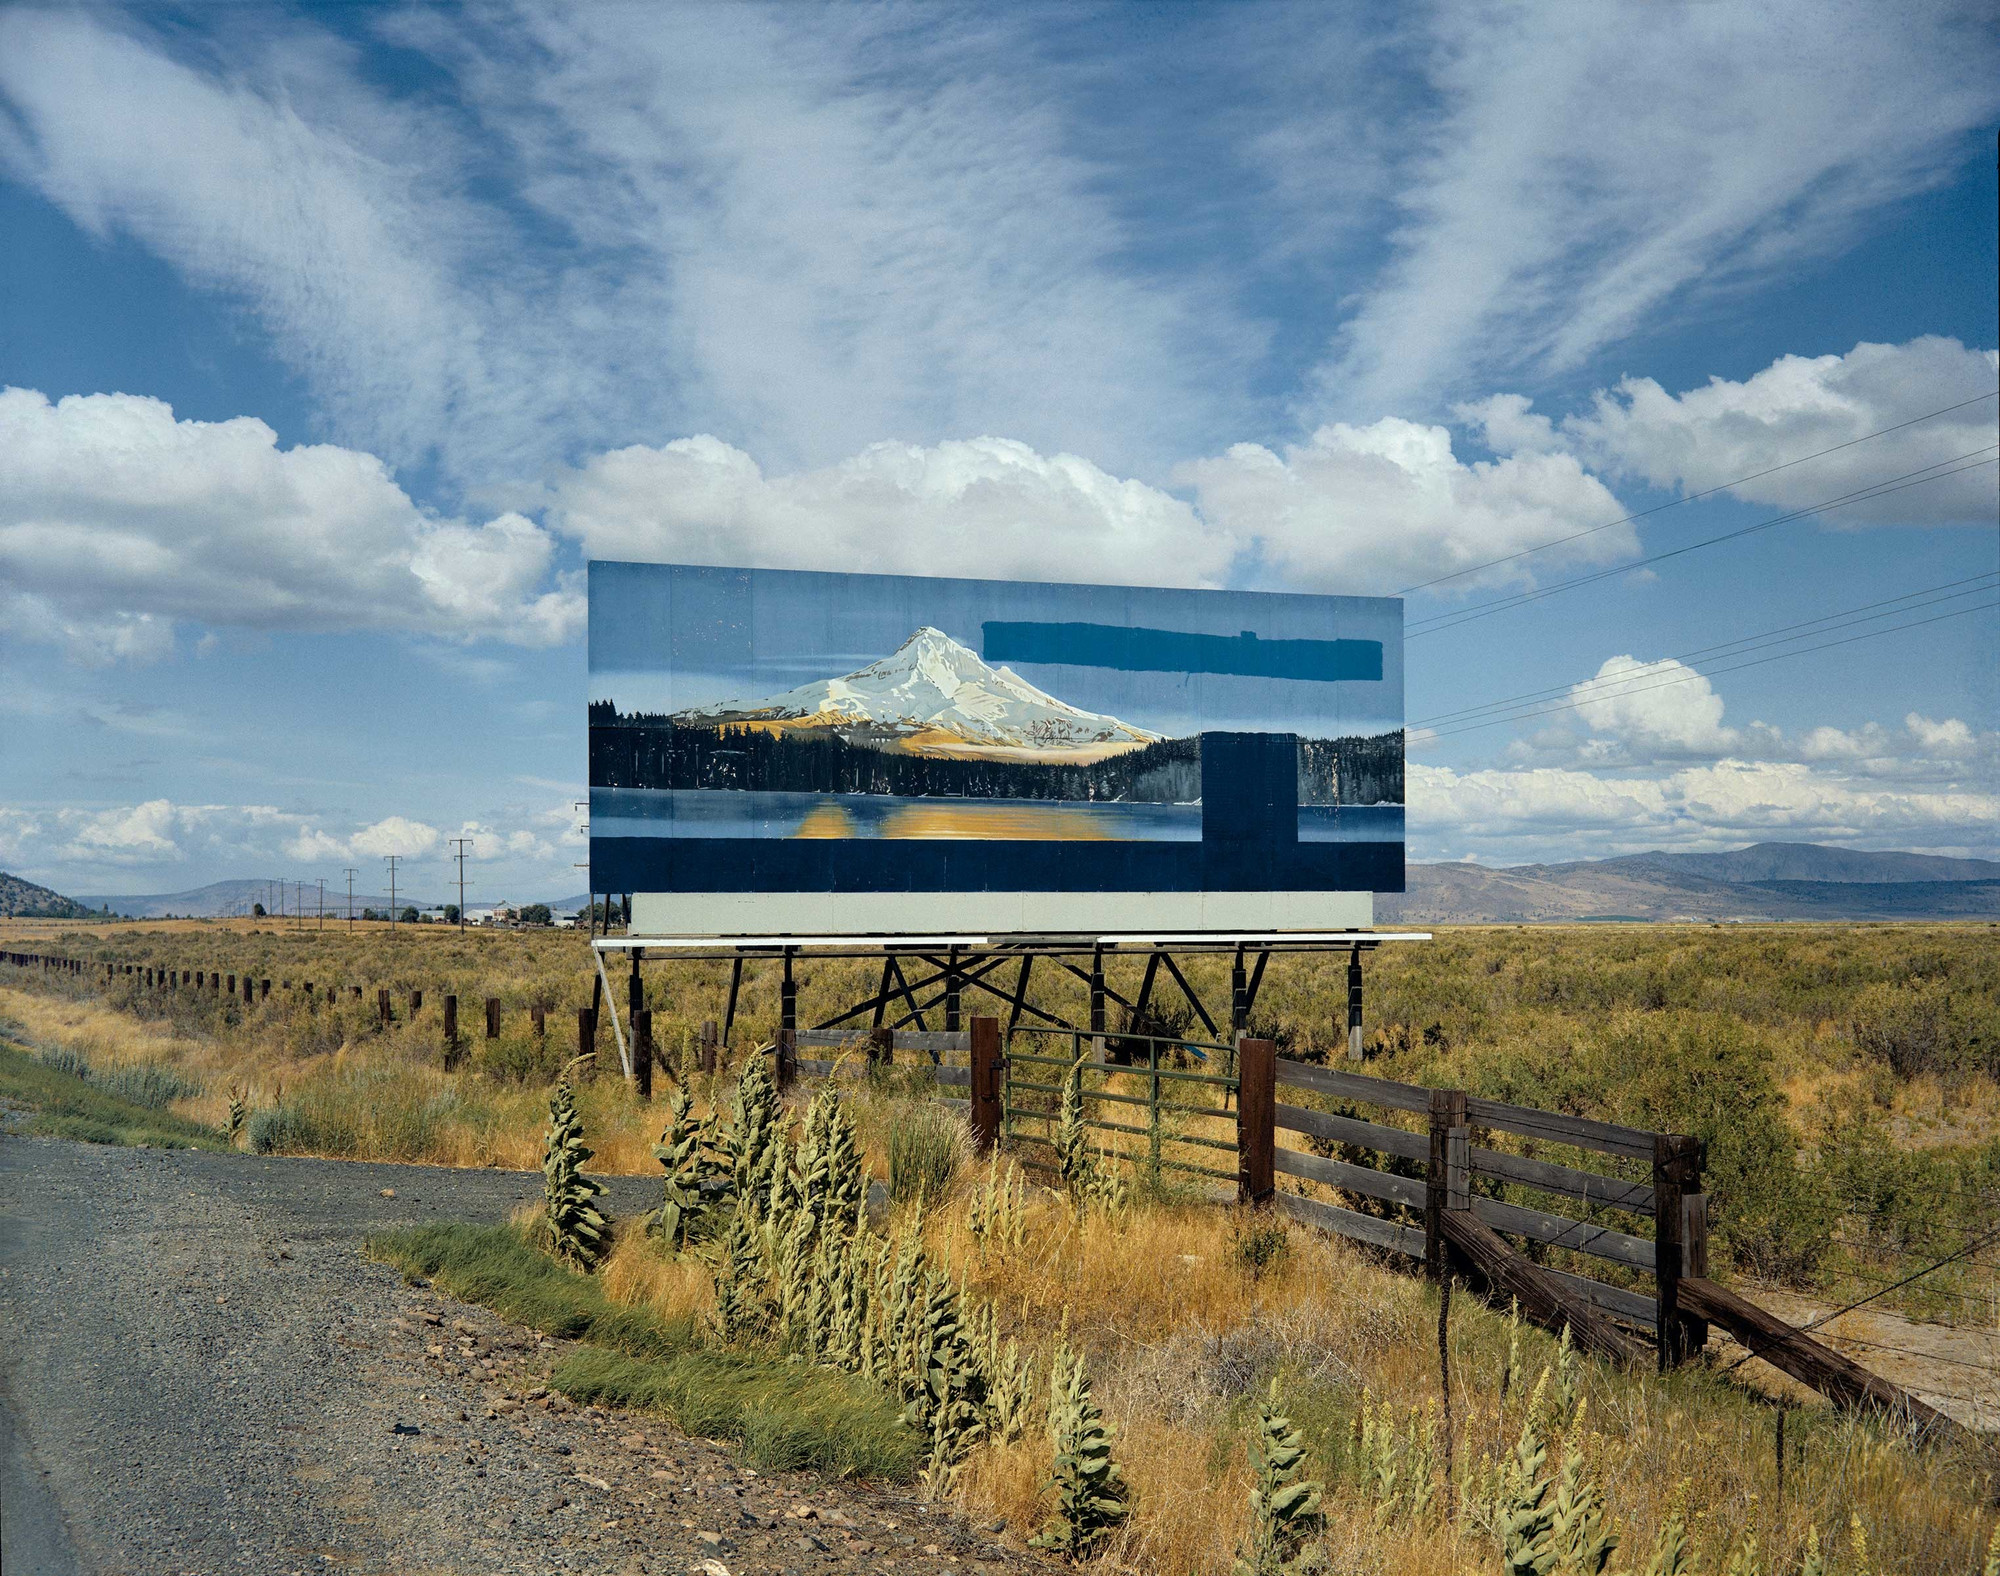 Stephen Shore. U.S. 97, South of Klamath Falls, Oregon, July 21, 1973. 1973. Chromogenic color print, printed 2002, 17 3/4 x 21 15/16″ (45.1 x 55.7 cm). The Museum of Modern Art, New York. The Photography Council Fund. © 2017 Stephen Shore